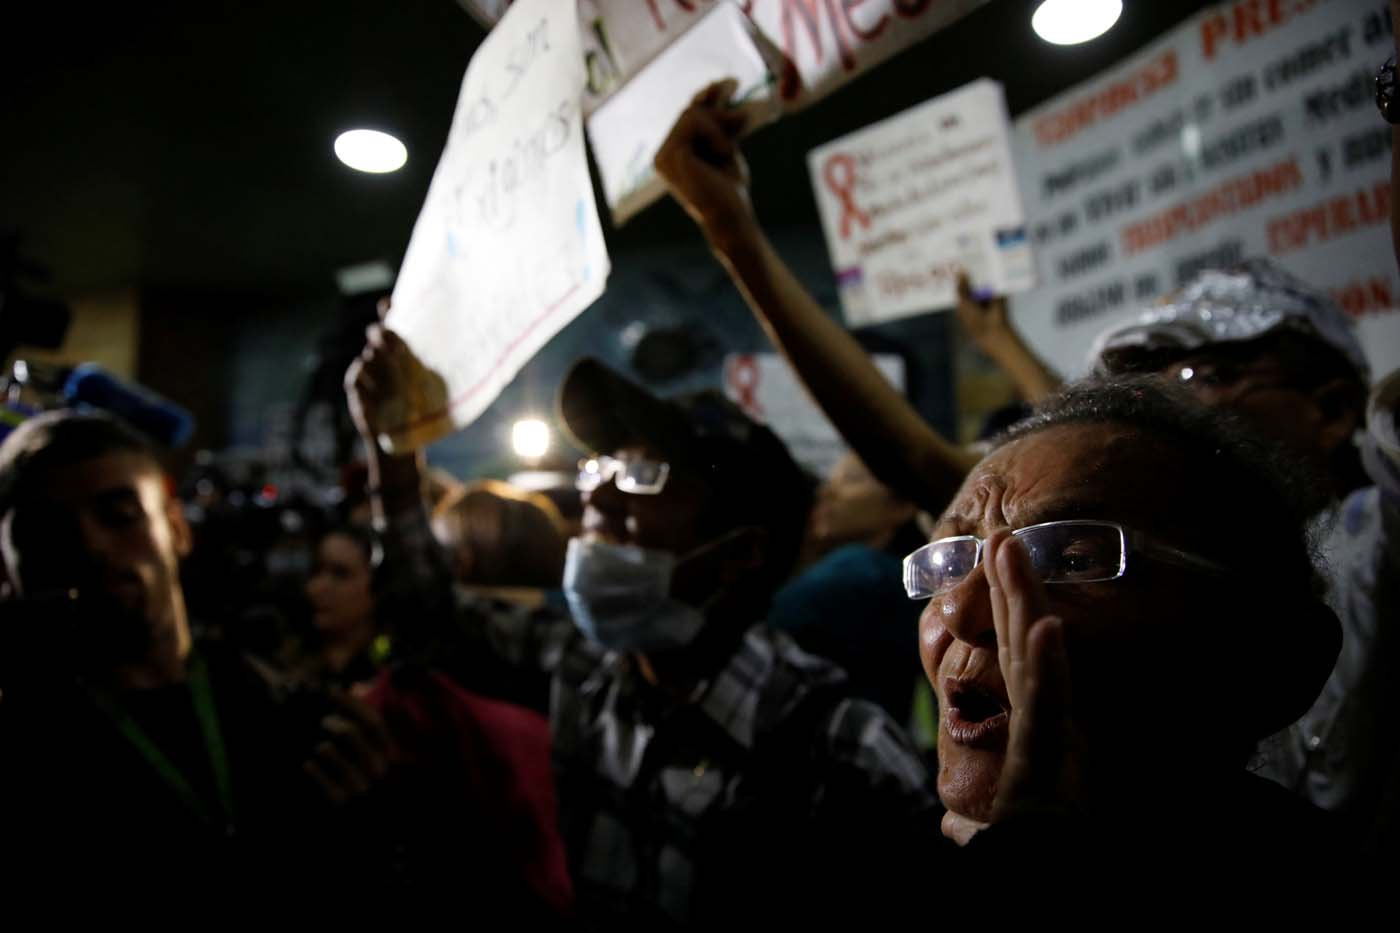 People shout slogans during a protest due to the shortages of medicines outside the Health Ministry in Caracas, Venezuela April 18, 2018. REUTERS/Carlos Garcia Rawlins